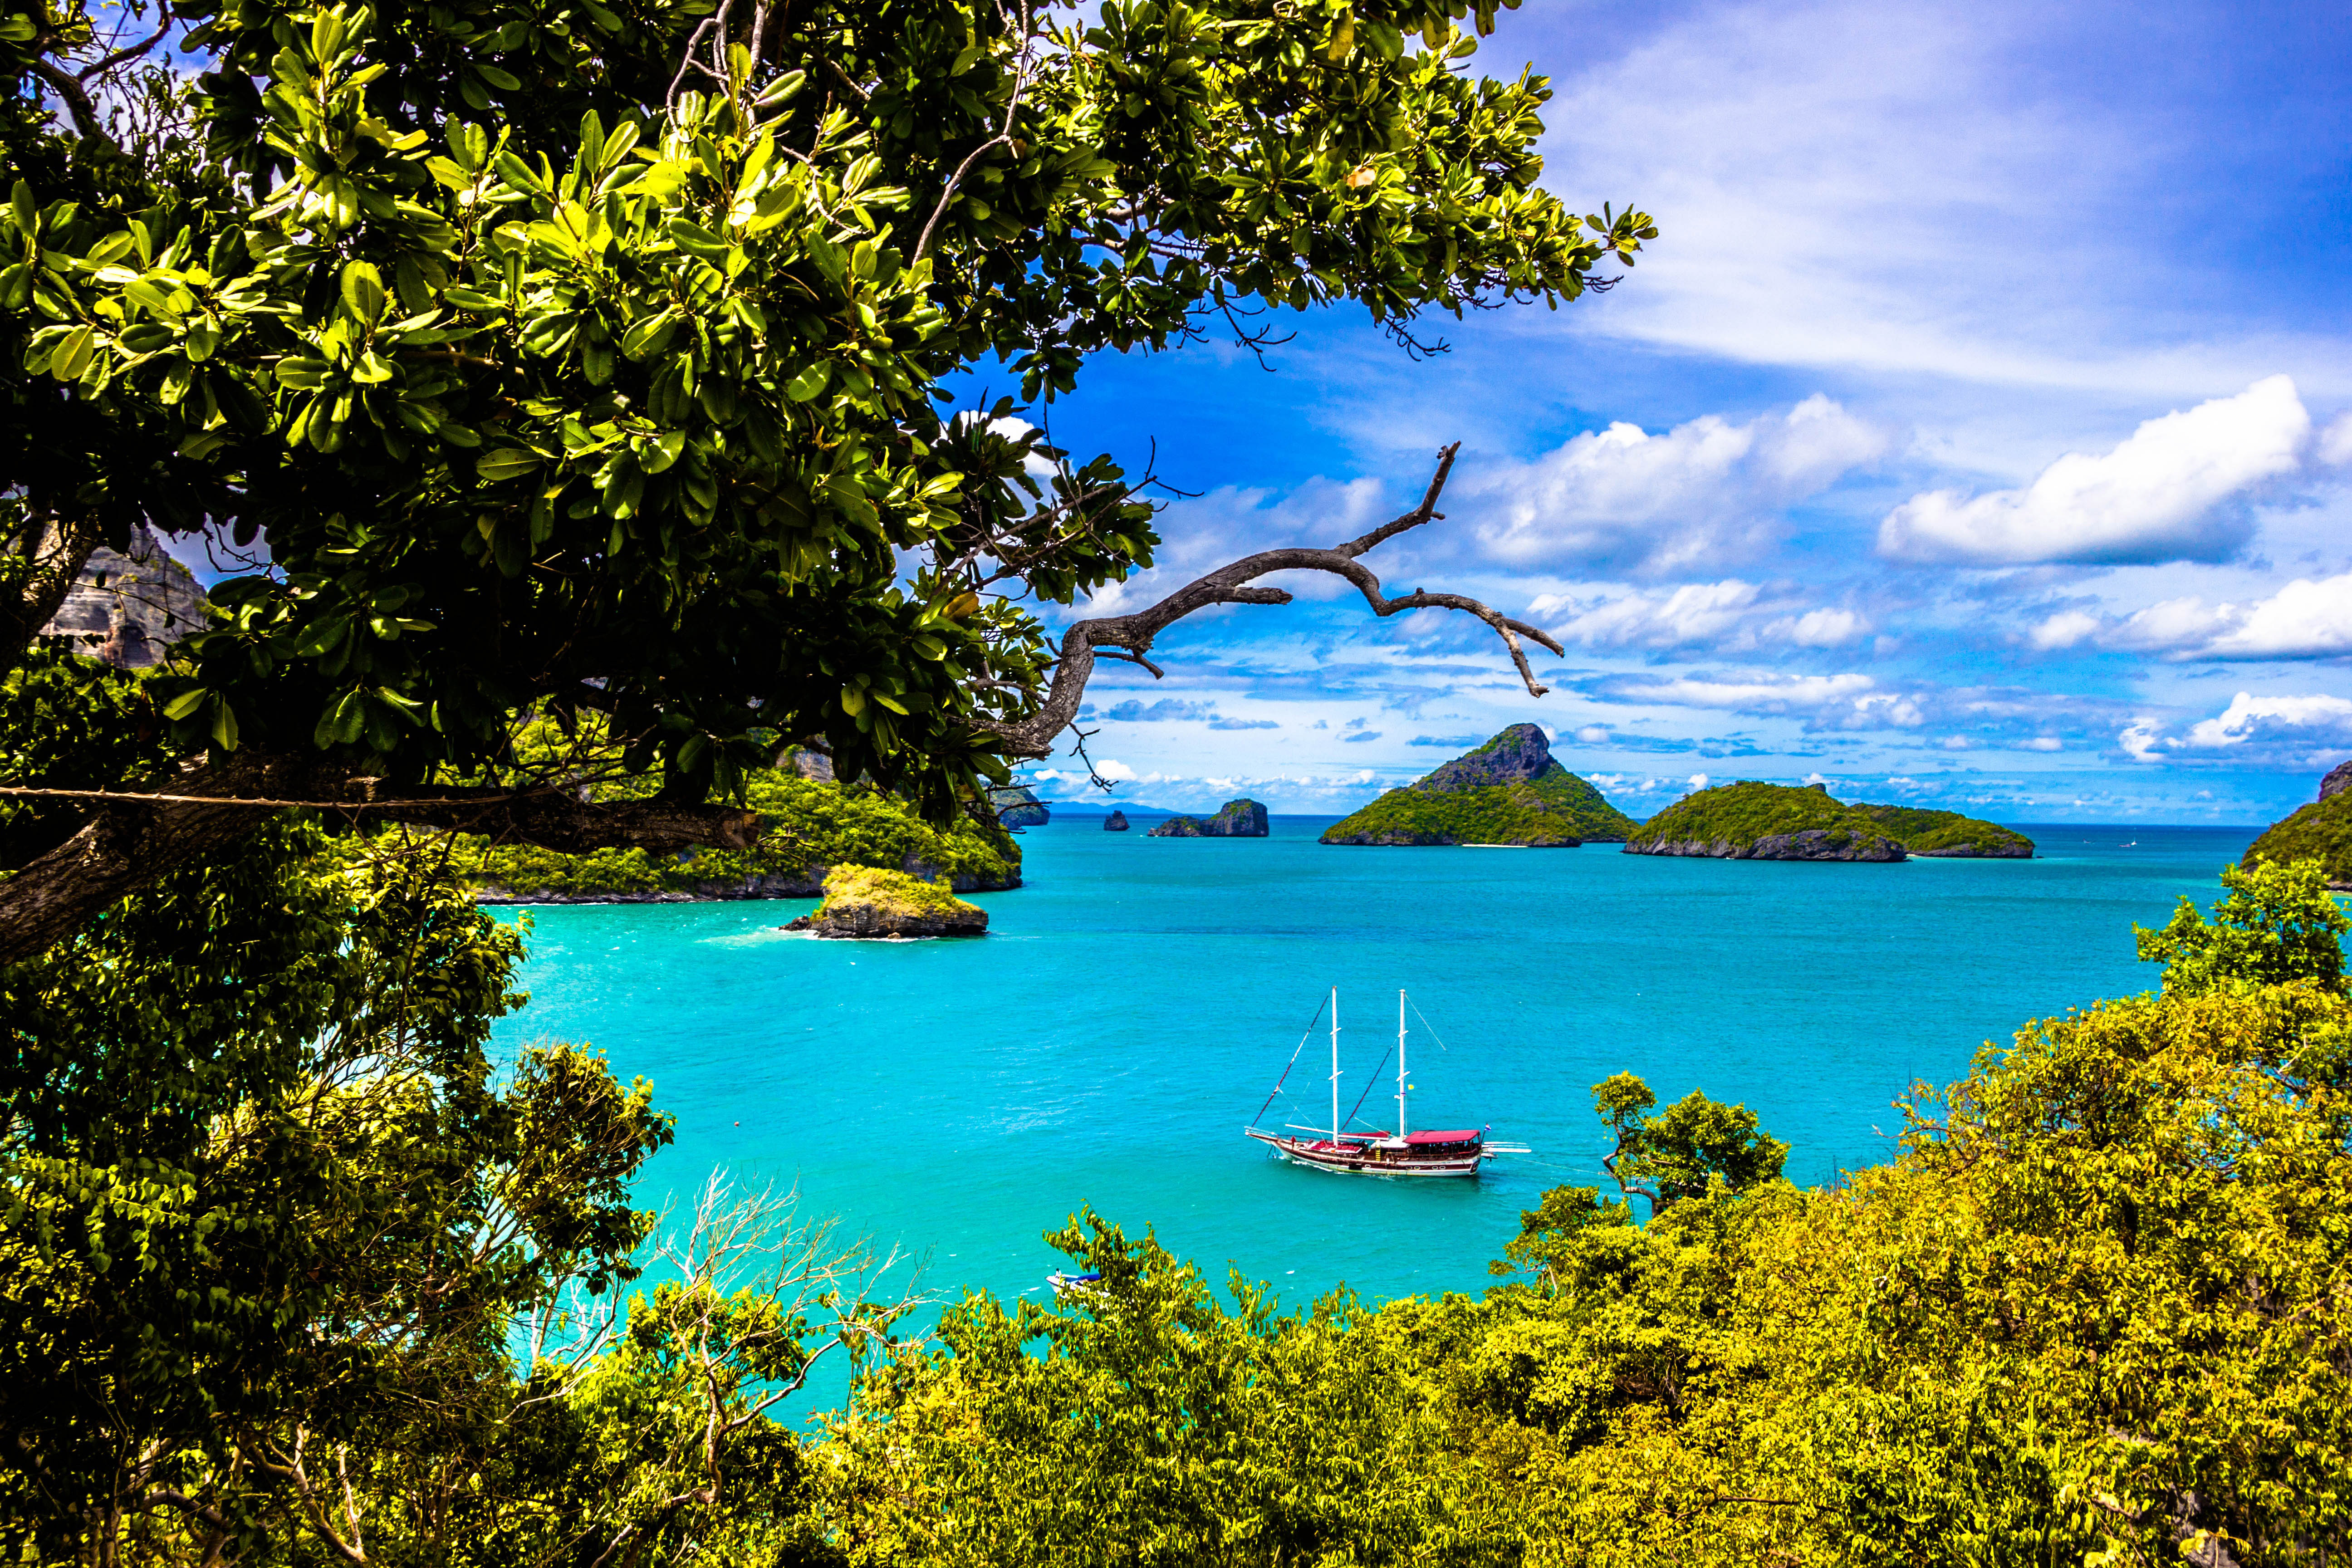 Beautiful water and ocean in Thailand image - Free stock ...